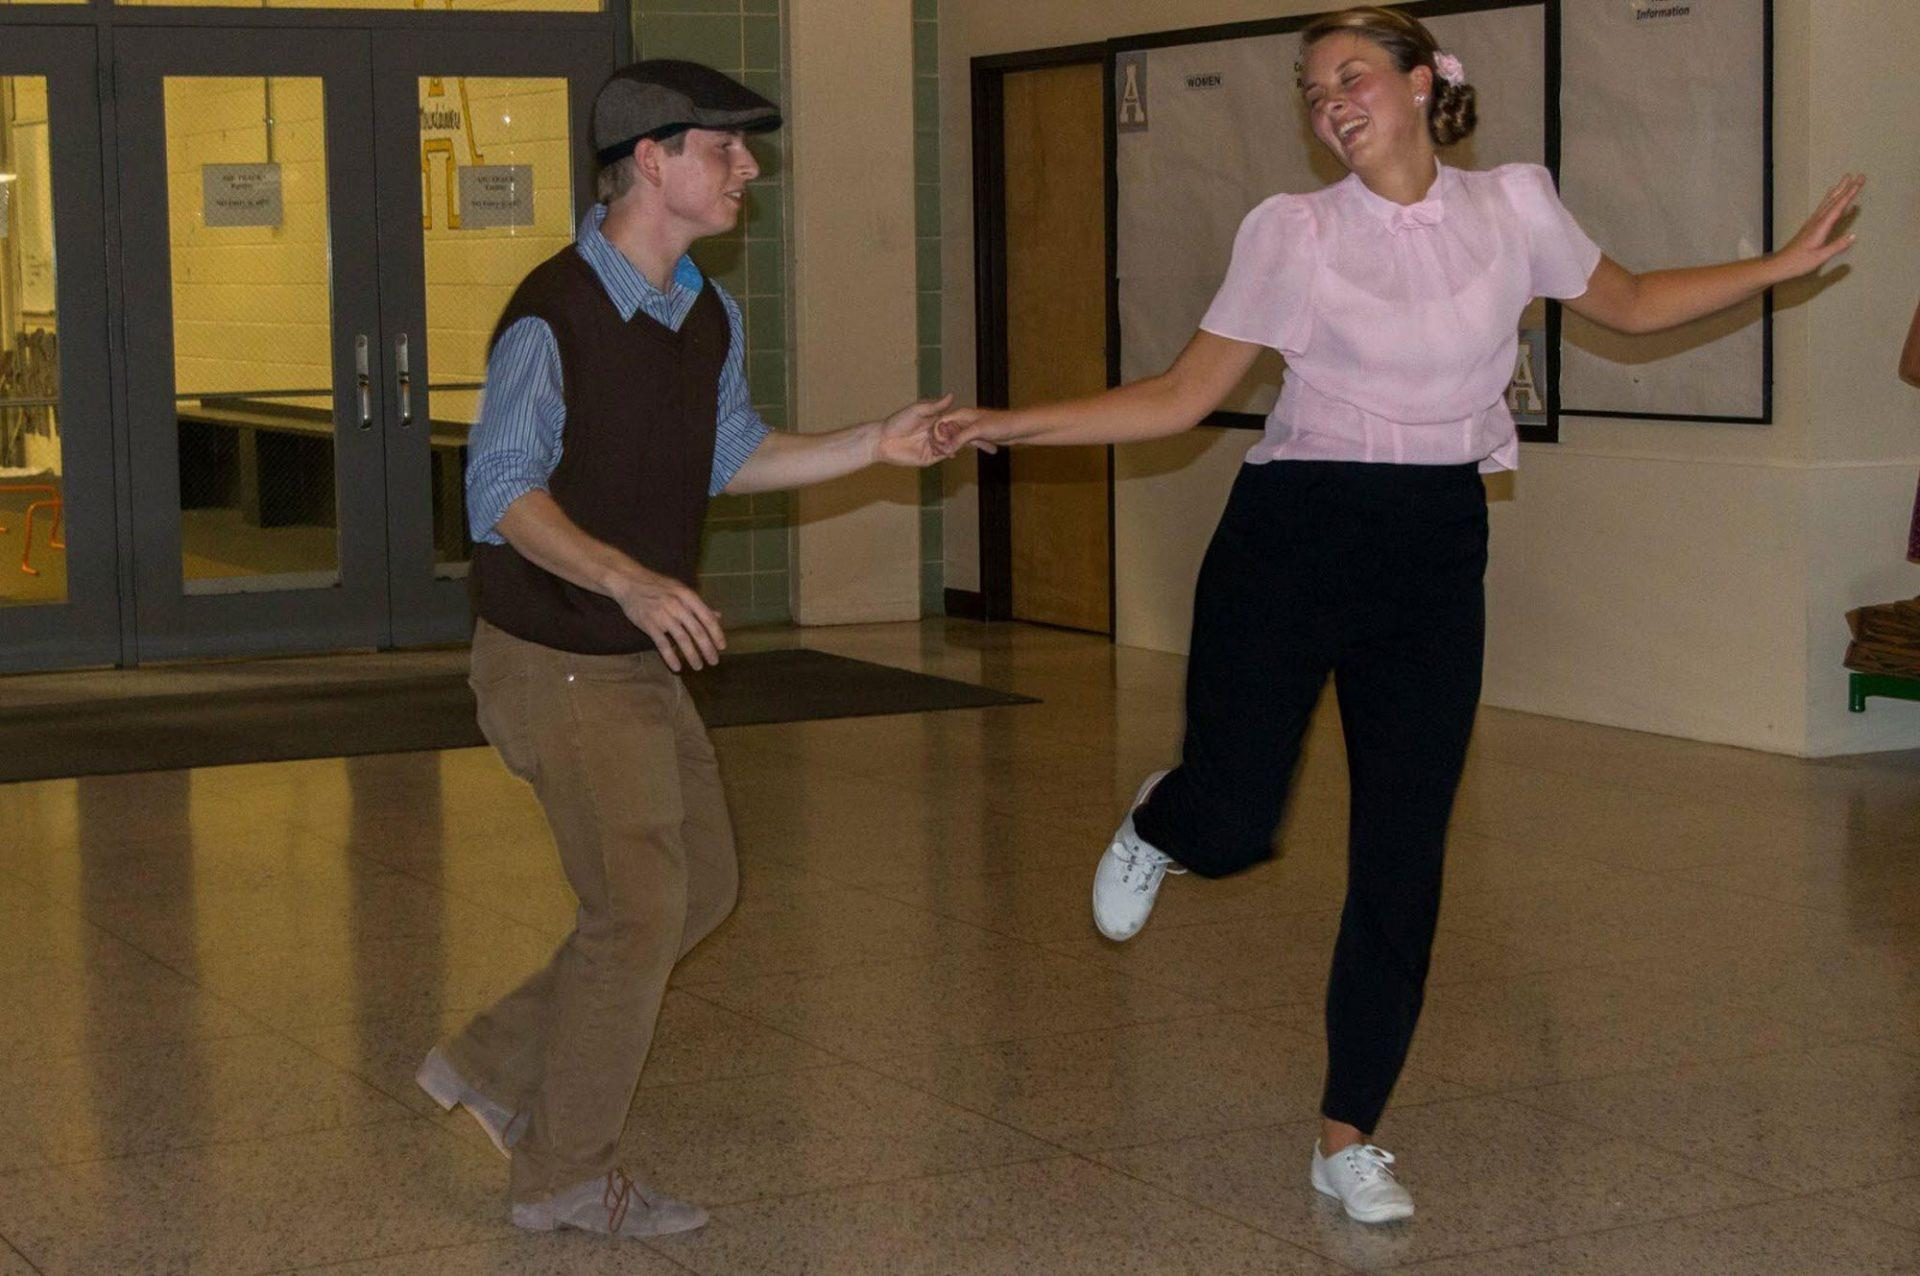 A blast from the past: The Swing Dance Club